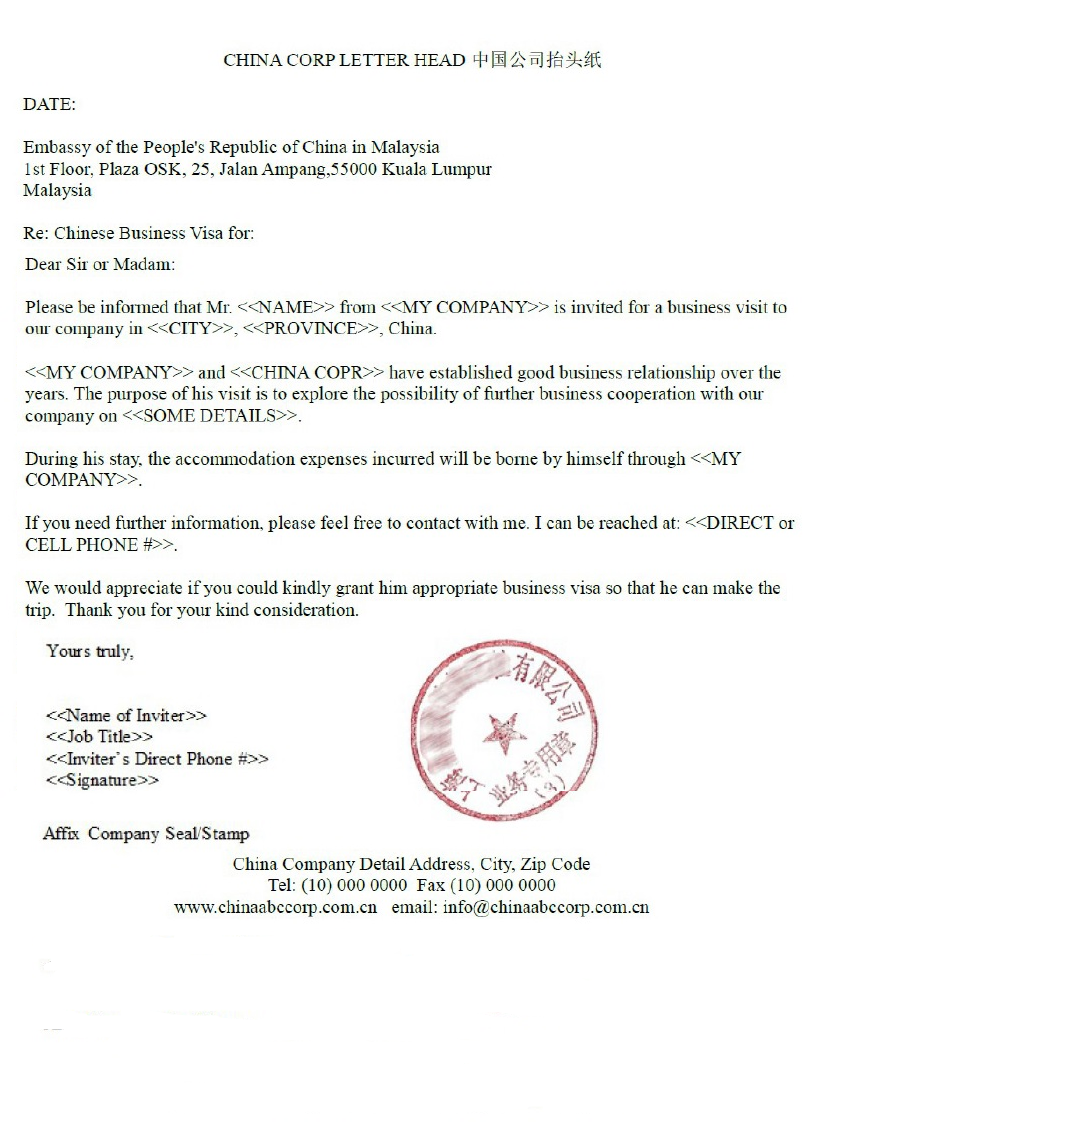 Sample invitation letter for business visa tripvisa click here to download altavistaventures Images